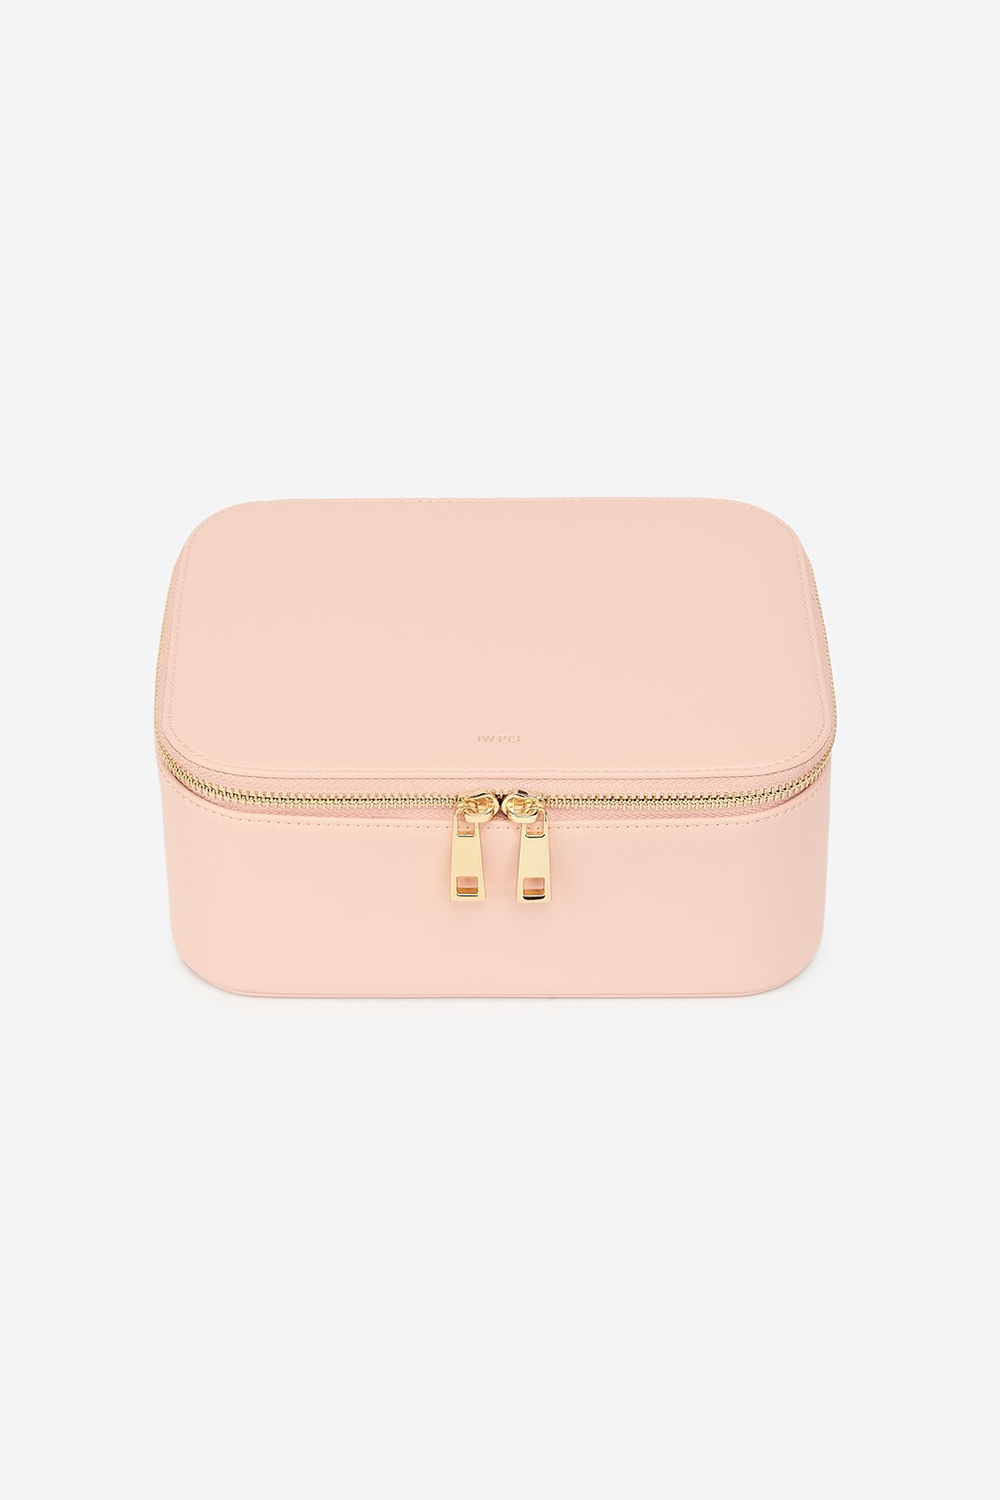 Elle Beauty Case in Blush